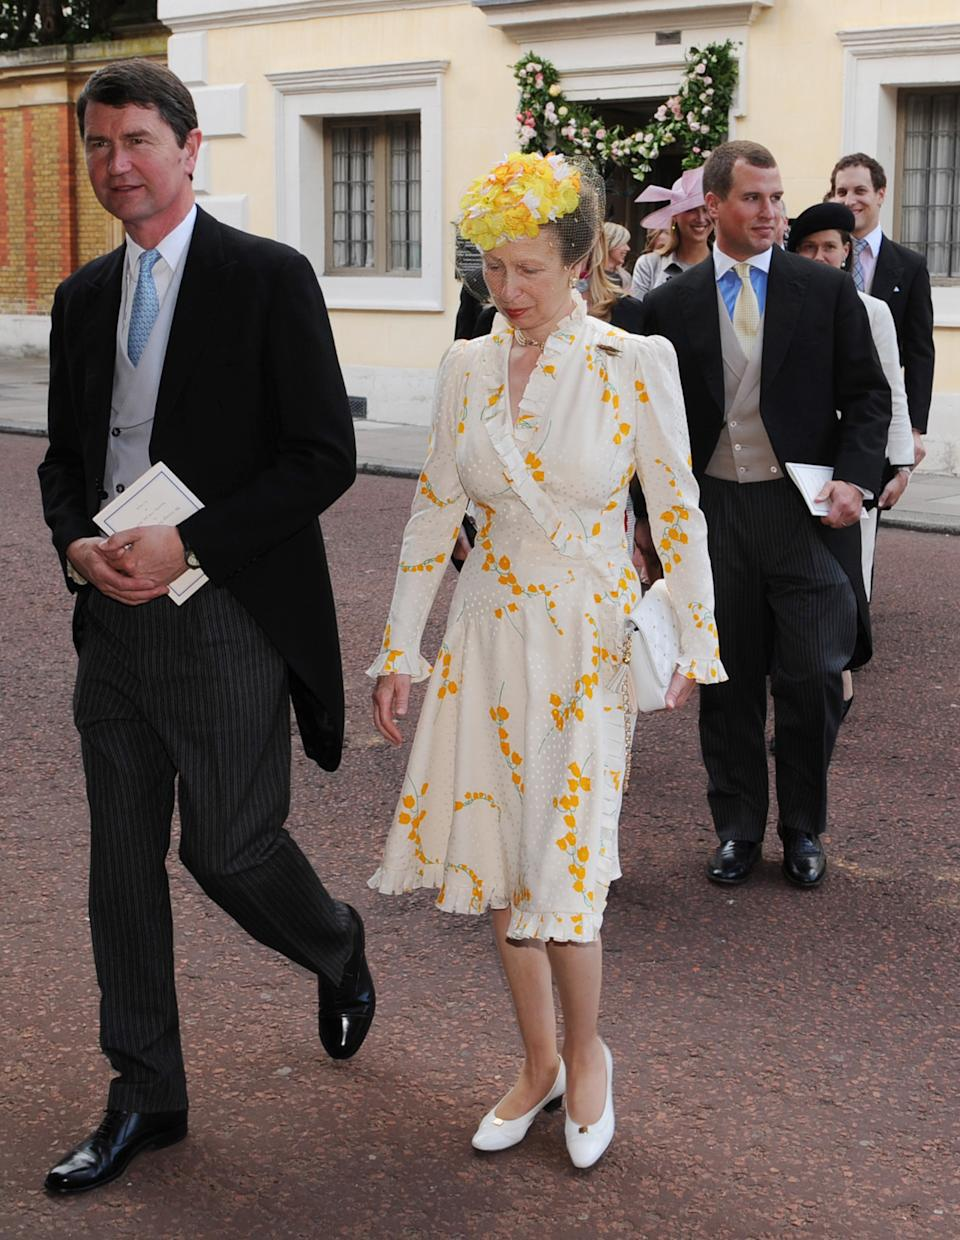 <p>Princess Anne wore this yellow summery dress to a royal wedding in 2008, and it was a rewear then - so perhaps now's the time to bring it back once more. (Stefan Rousseau/PA Wire)</p>